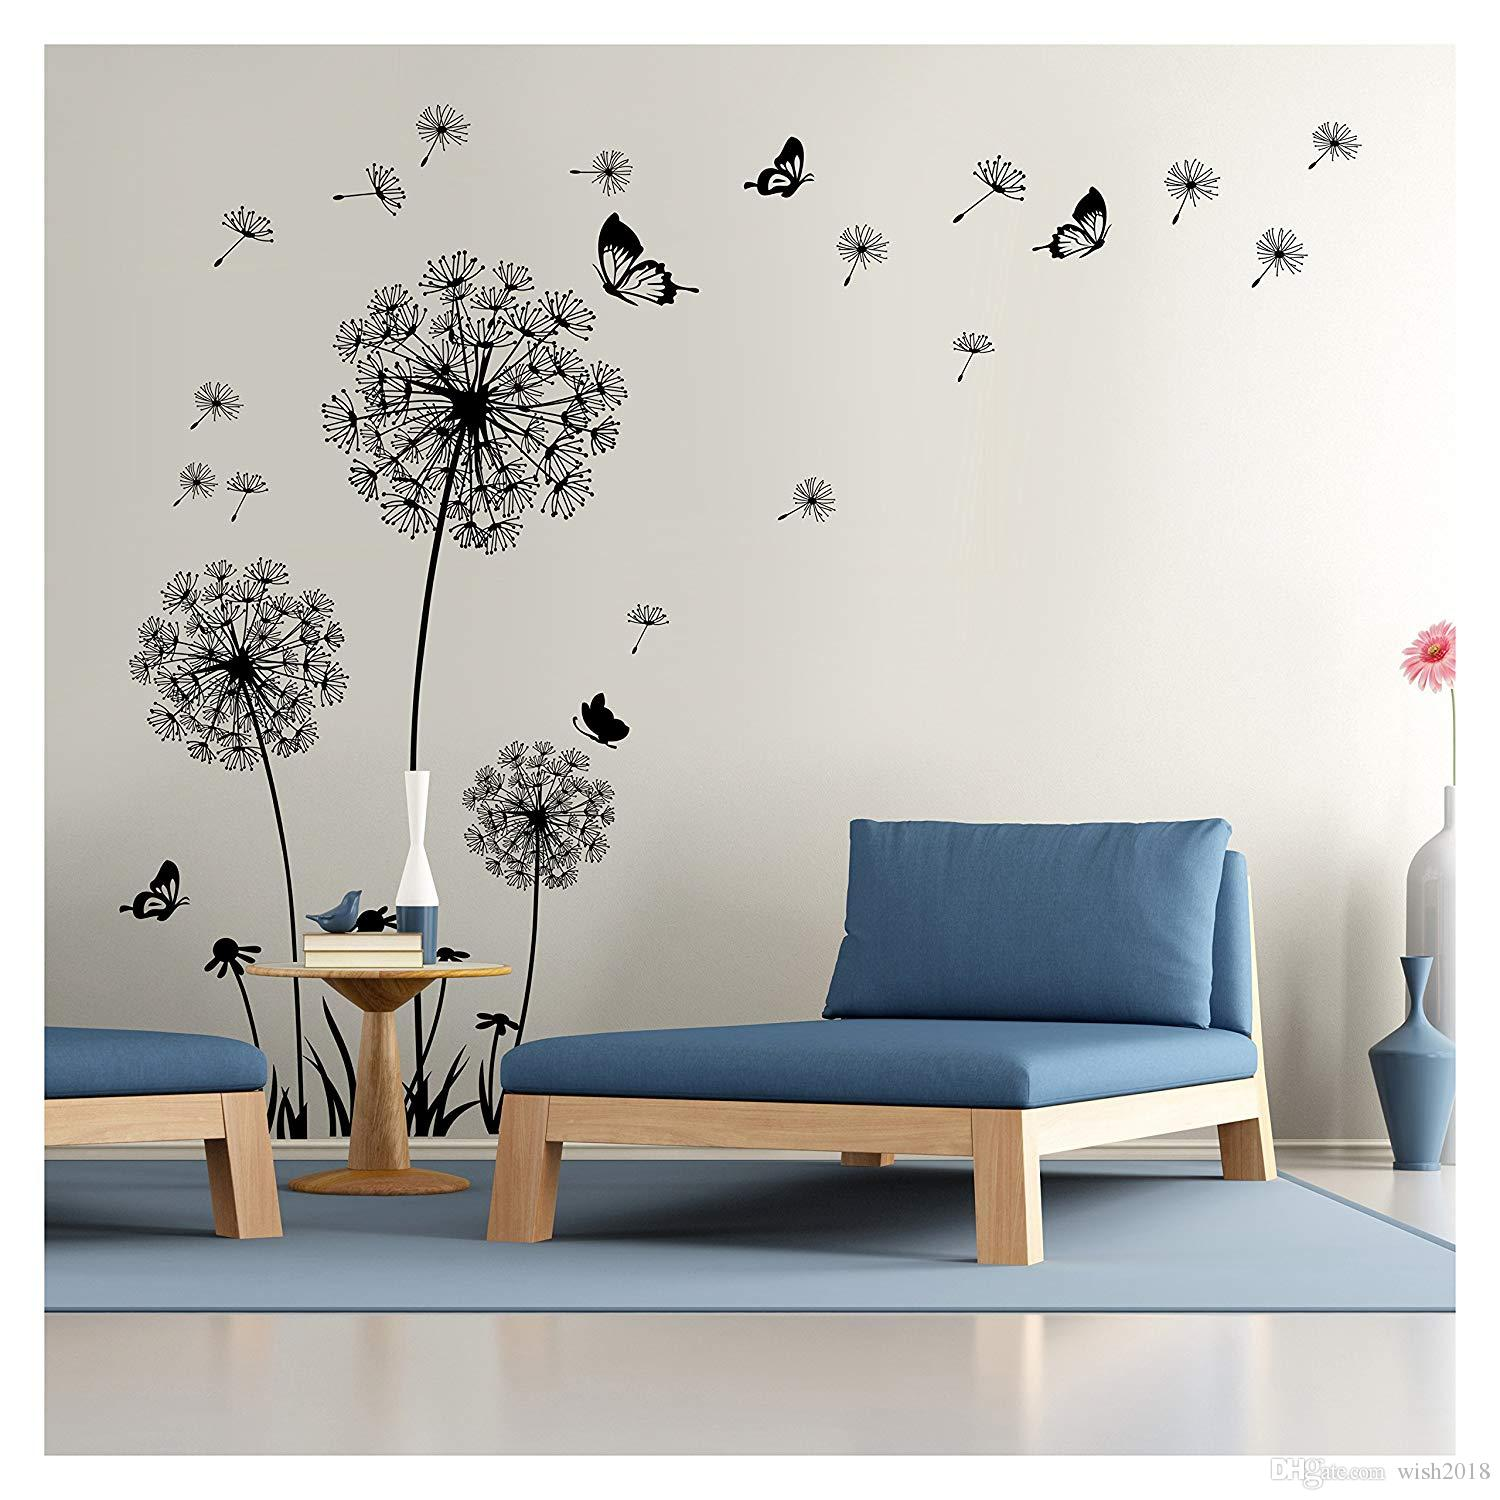 Wall Decal Dandelion Wall Mural Peel And Stick Removable Vinyl Wall Sticker Home Decor Sticker For The Wall Decoration Sticker For Wall From Wish2018